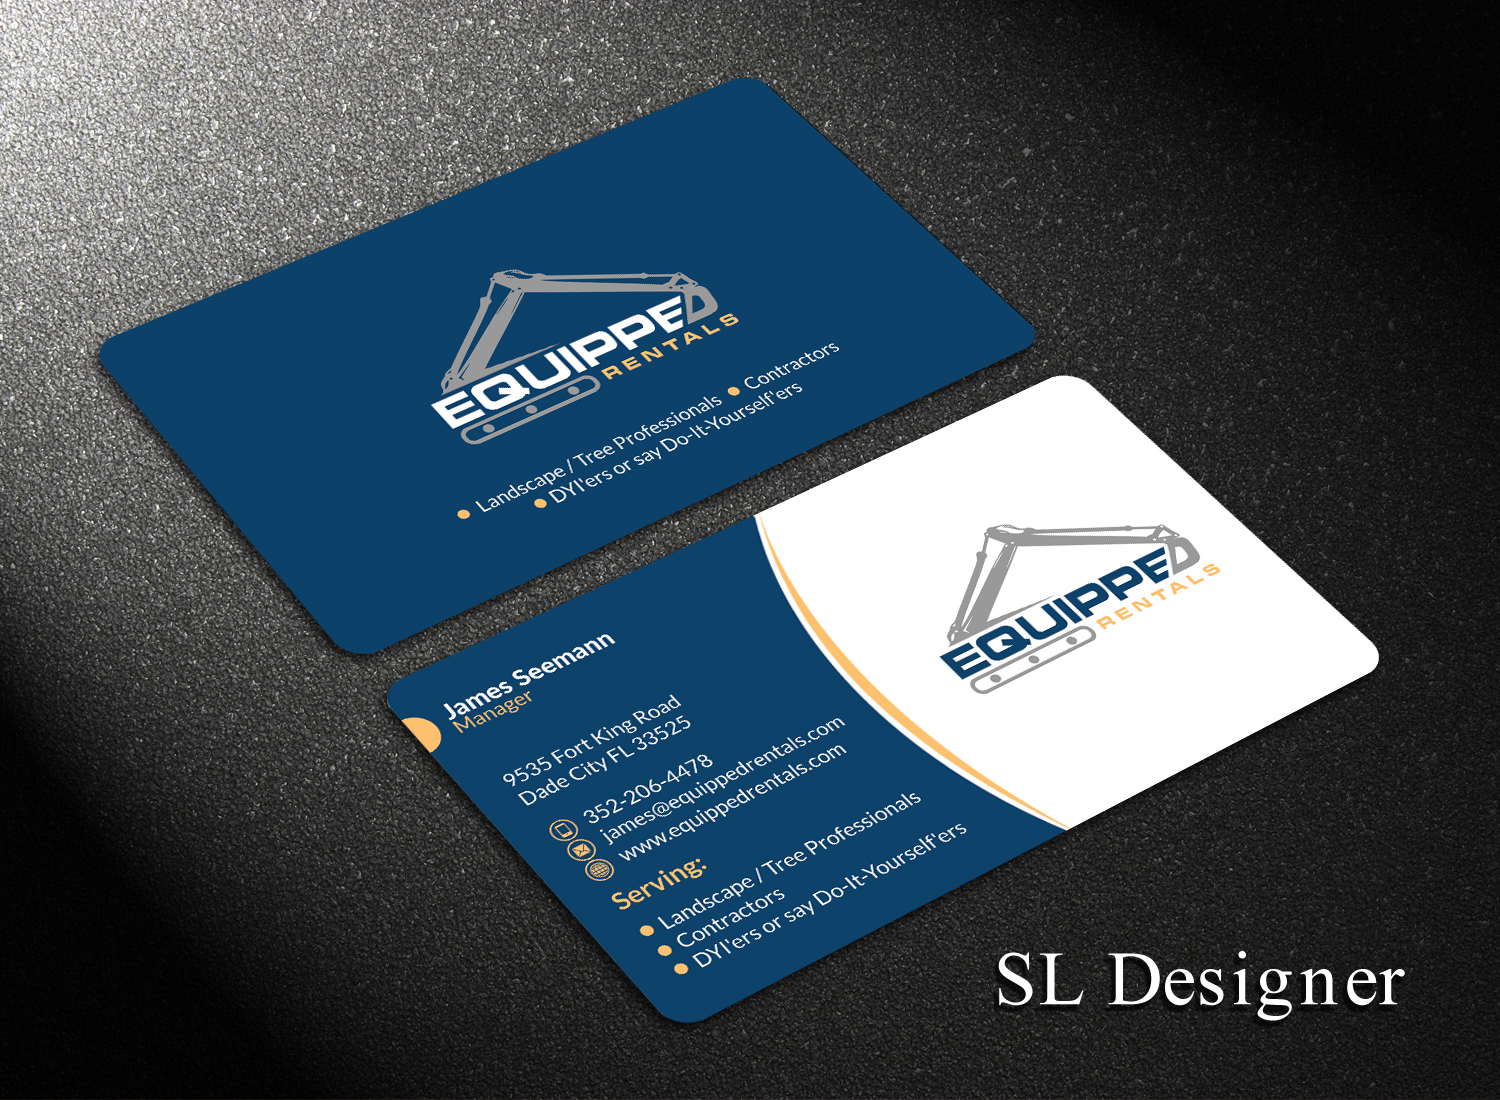 Serious modern business business card design for a company by sl business card design by sl designer for this project design 17809400 solutioingenieria Gallery